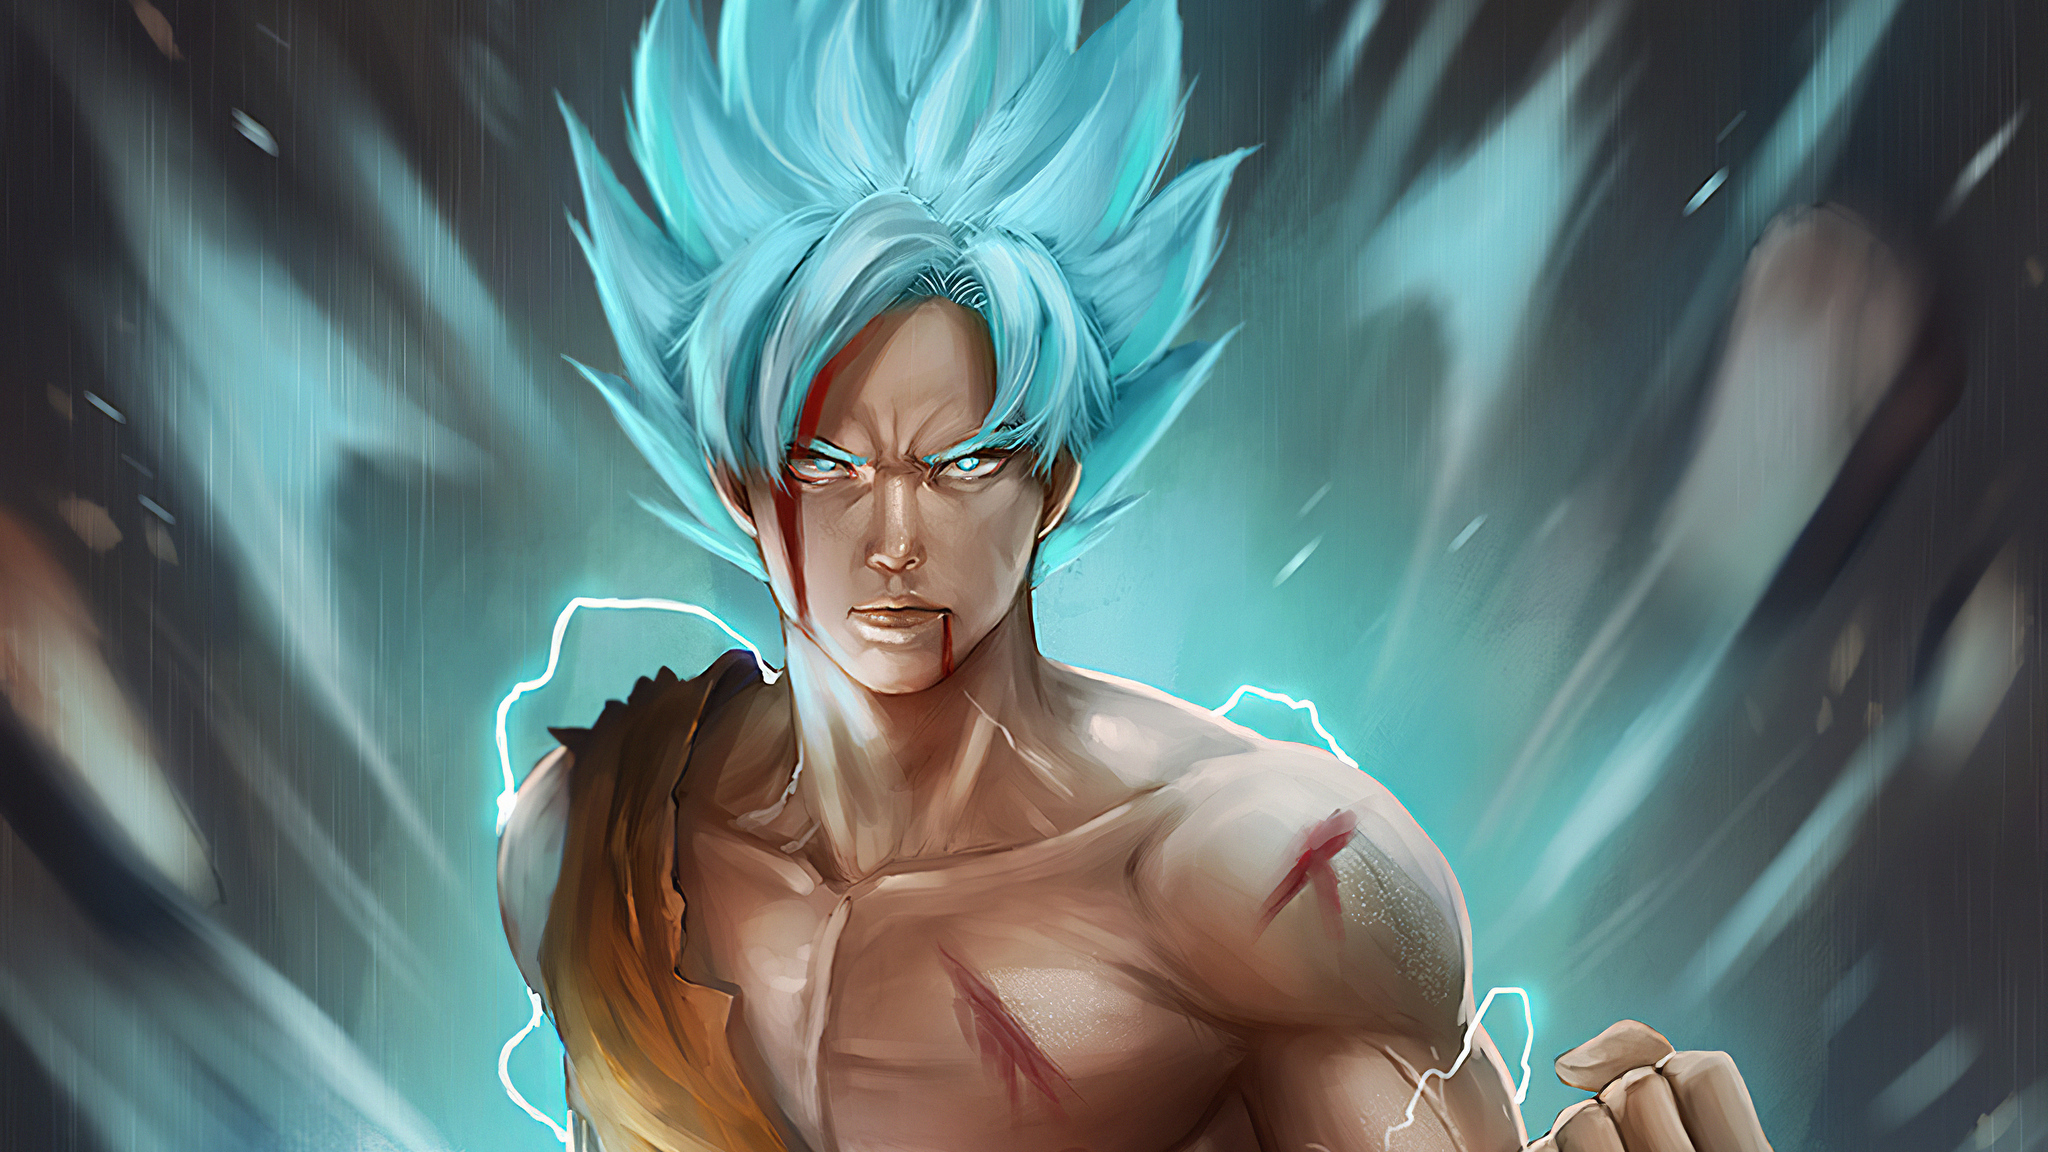 2048x1152 Vegeta Dragon Ball Super 4k Artwork 2048x1152 Resolution Hd 4k Wallpapers Images Backgrounds Photos And Pictures